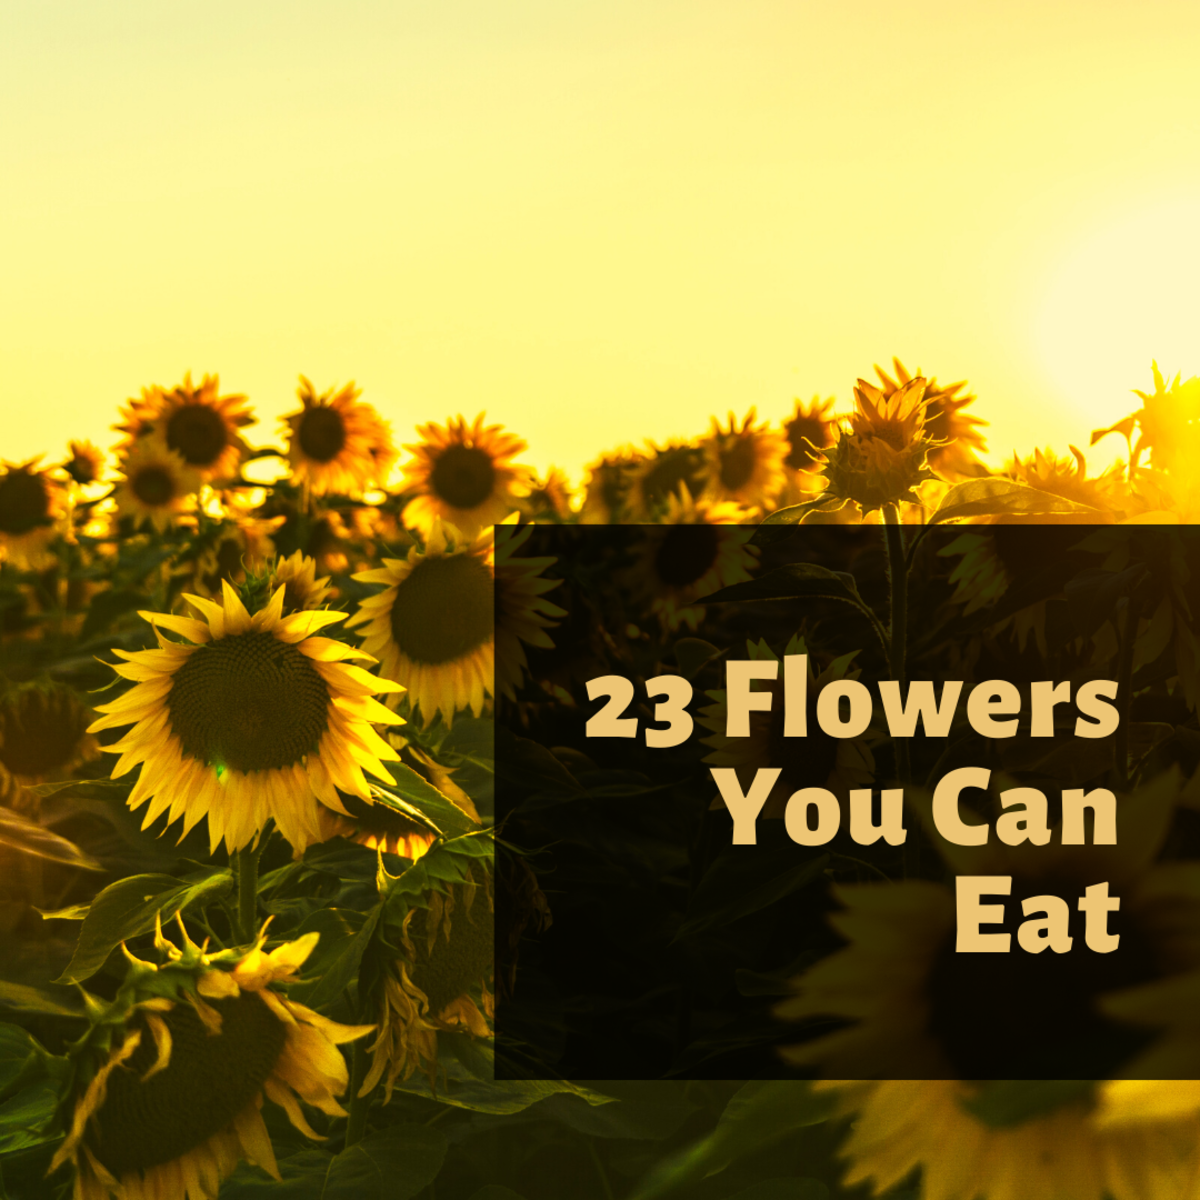 You can eat the buds, petals and seeds of a sunflower.